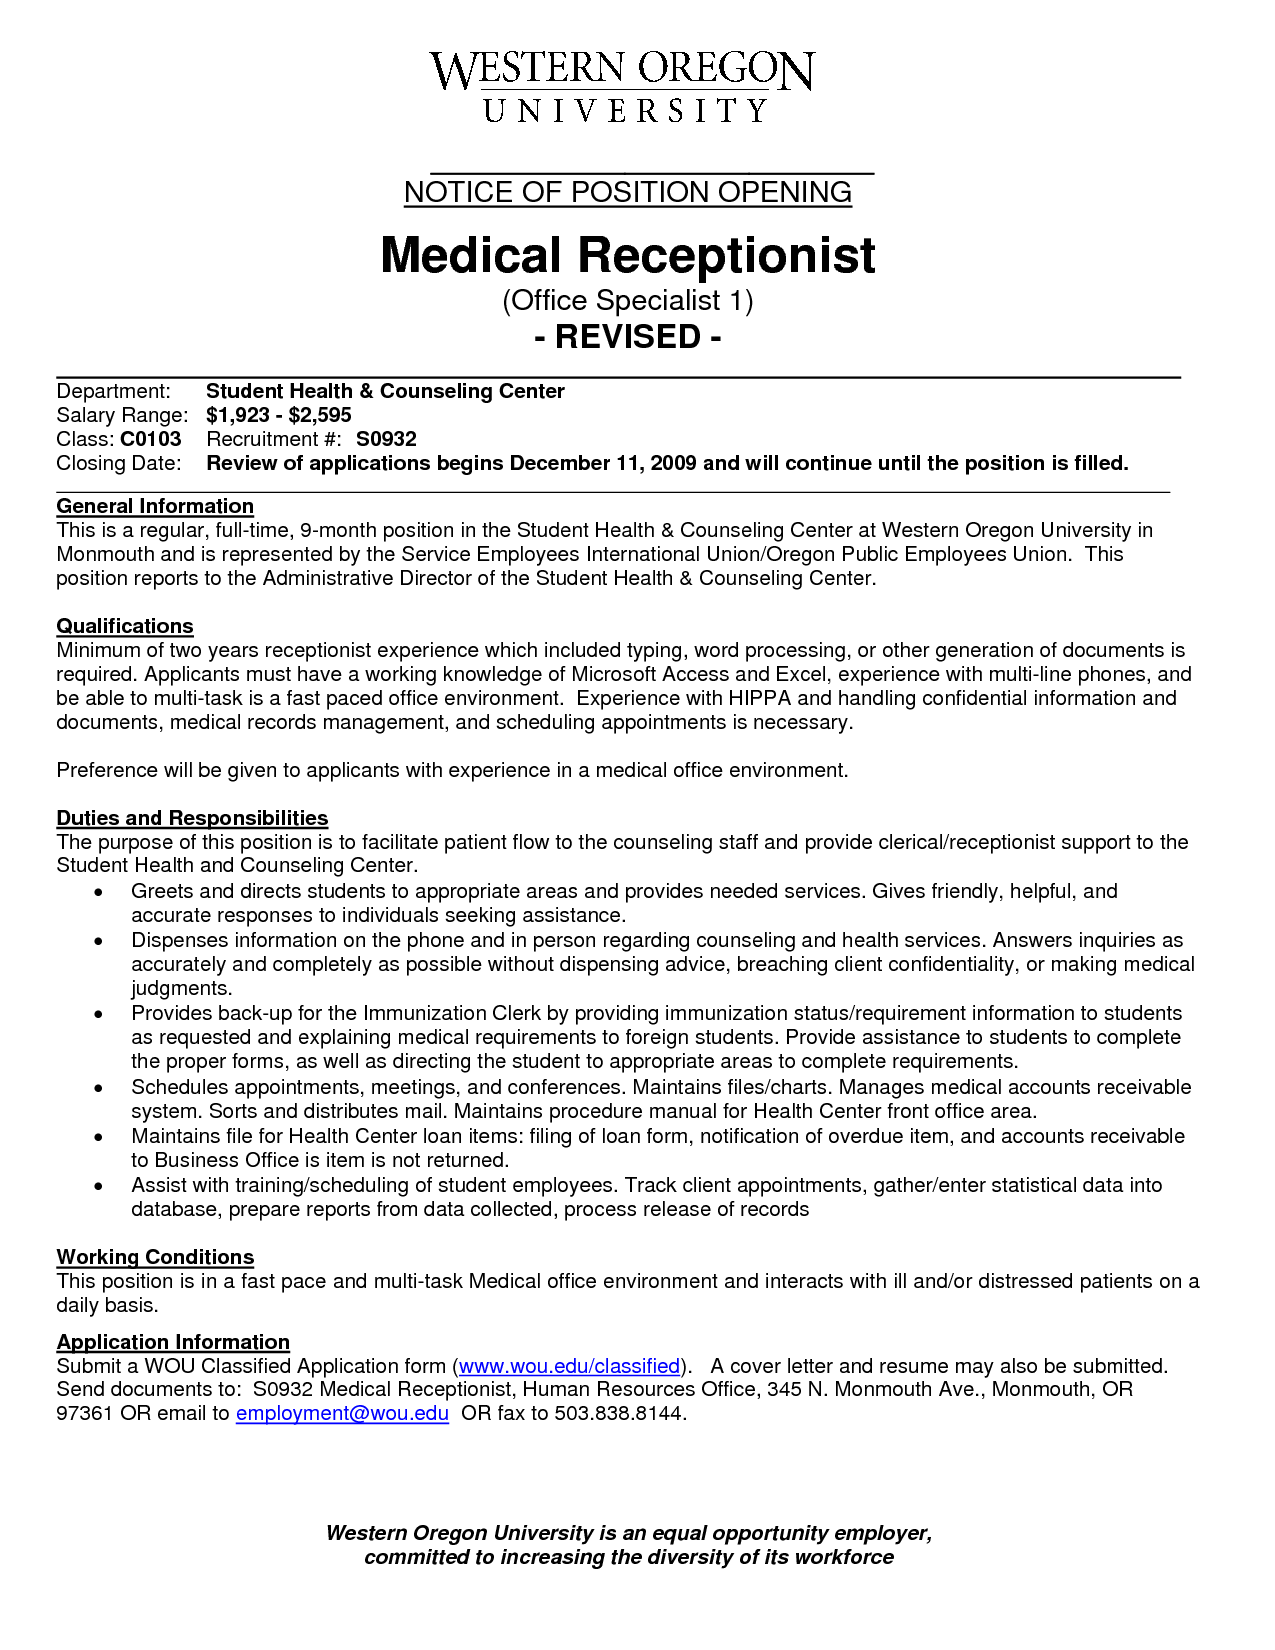 Medical Receptionist Resume Objective - Venturecapitalupdate.com